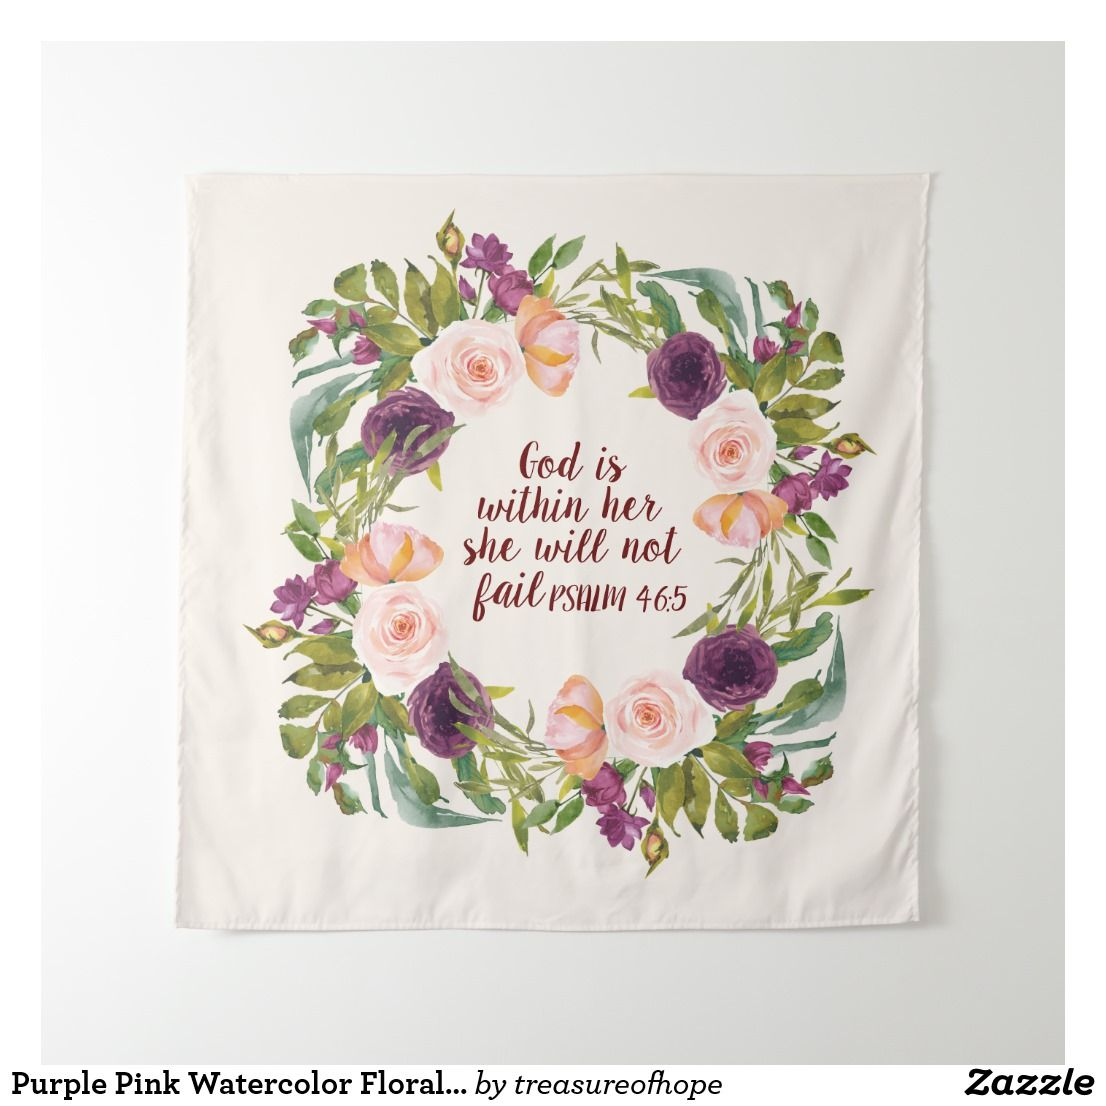 Purple Pink Watercolor Floral Christian Bible Tapestry